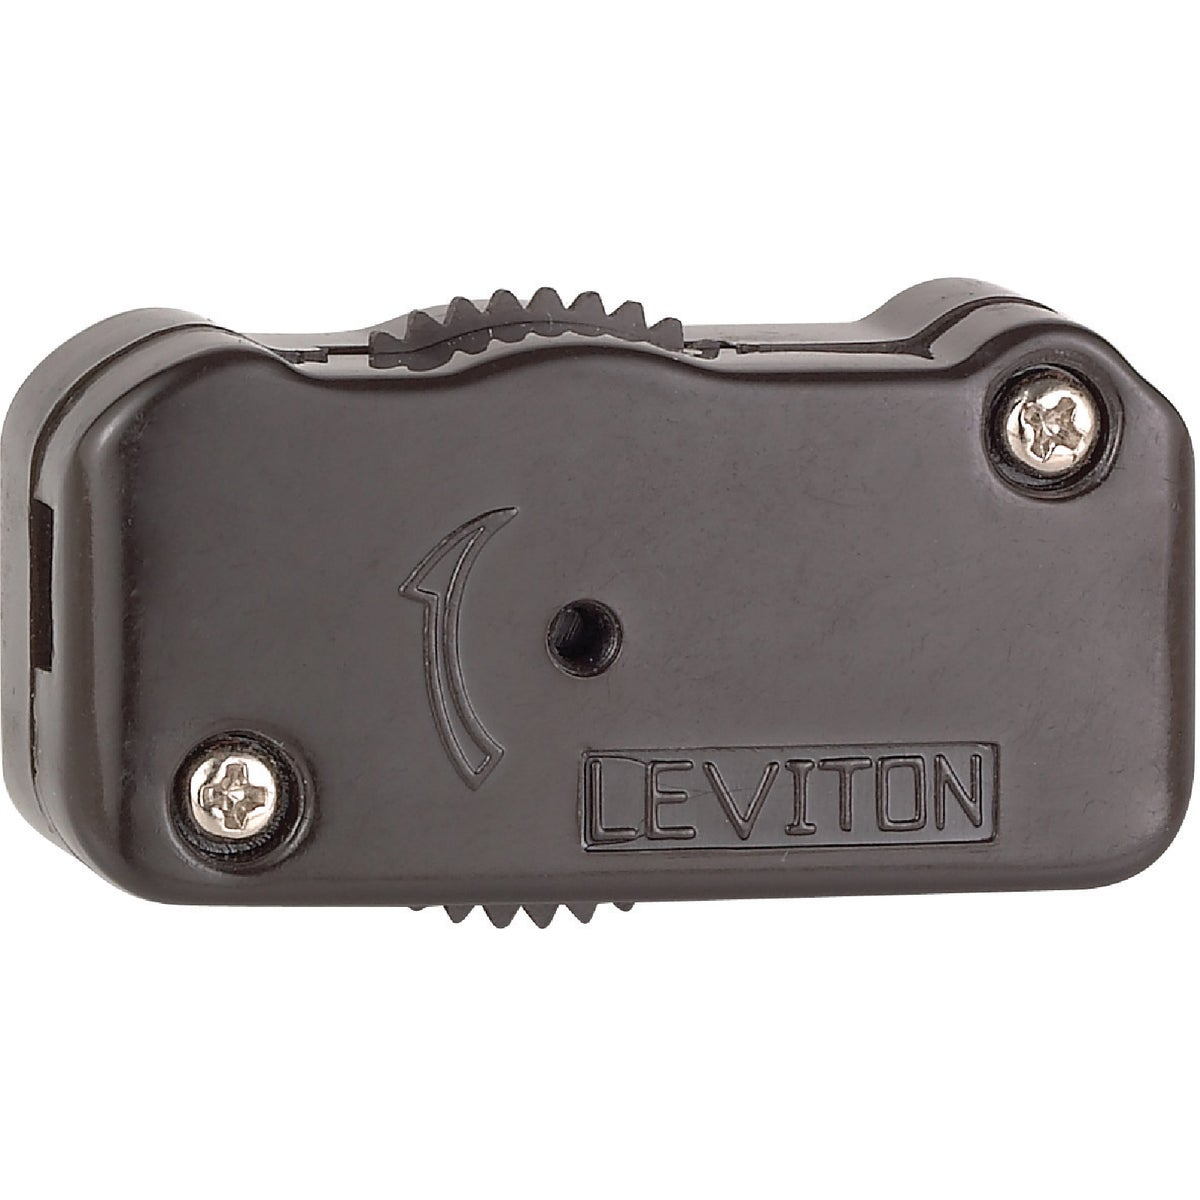 BRN CORD DIMMER - C20-01420 by Leviton Mfg Co